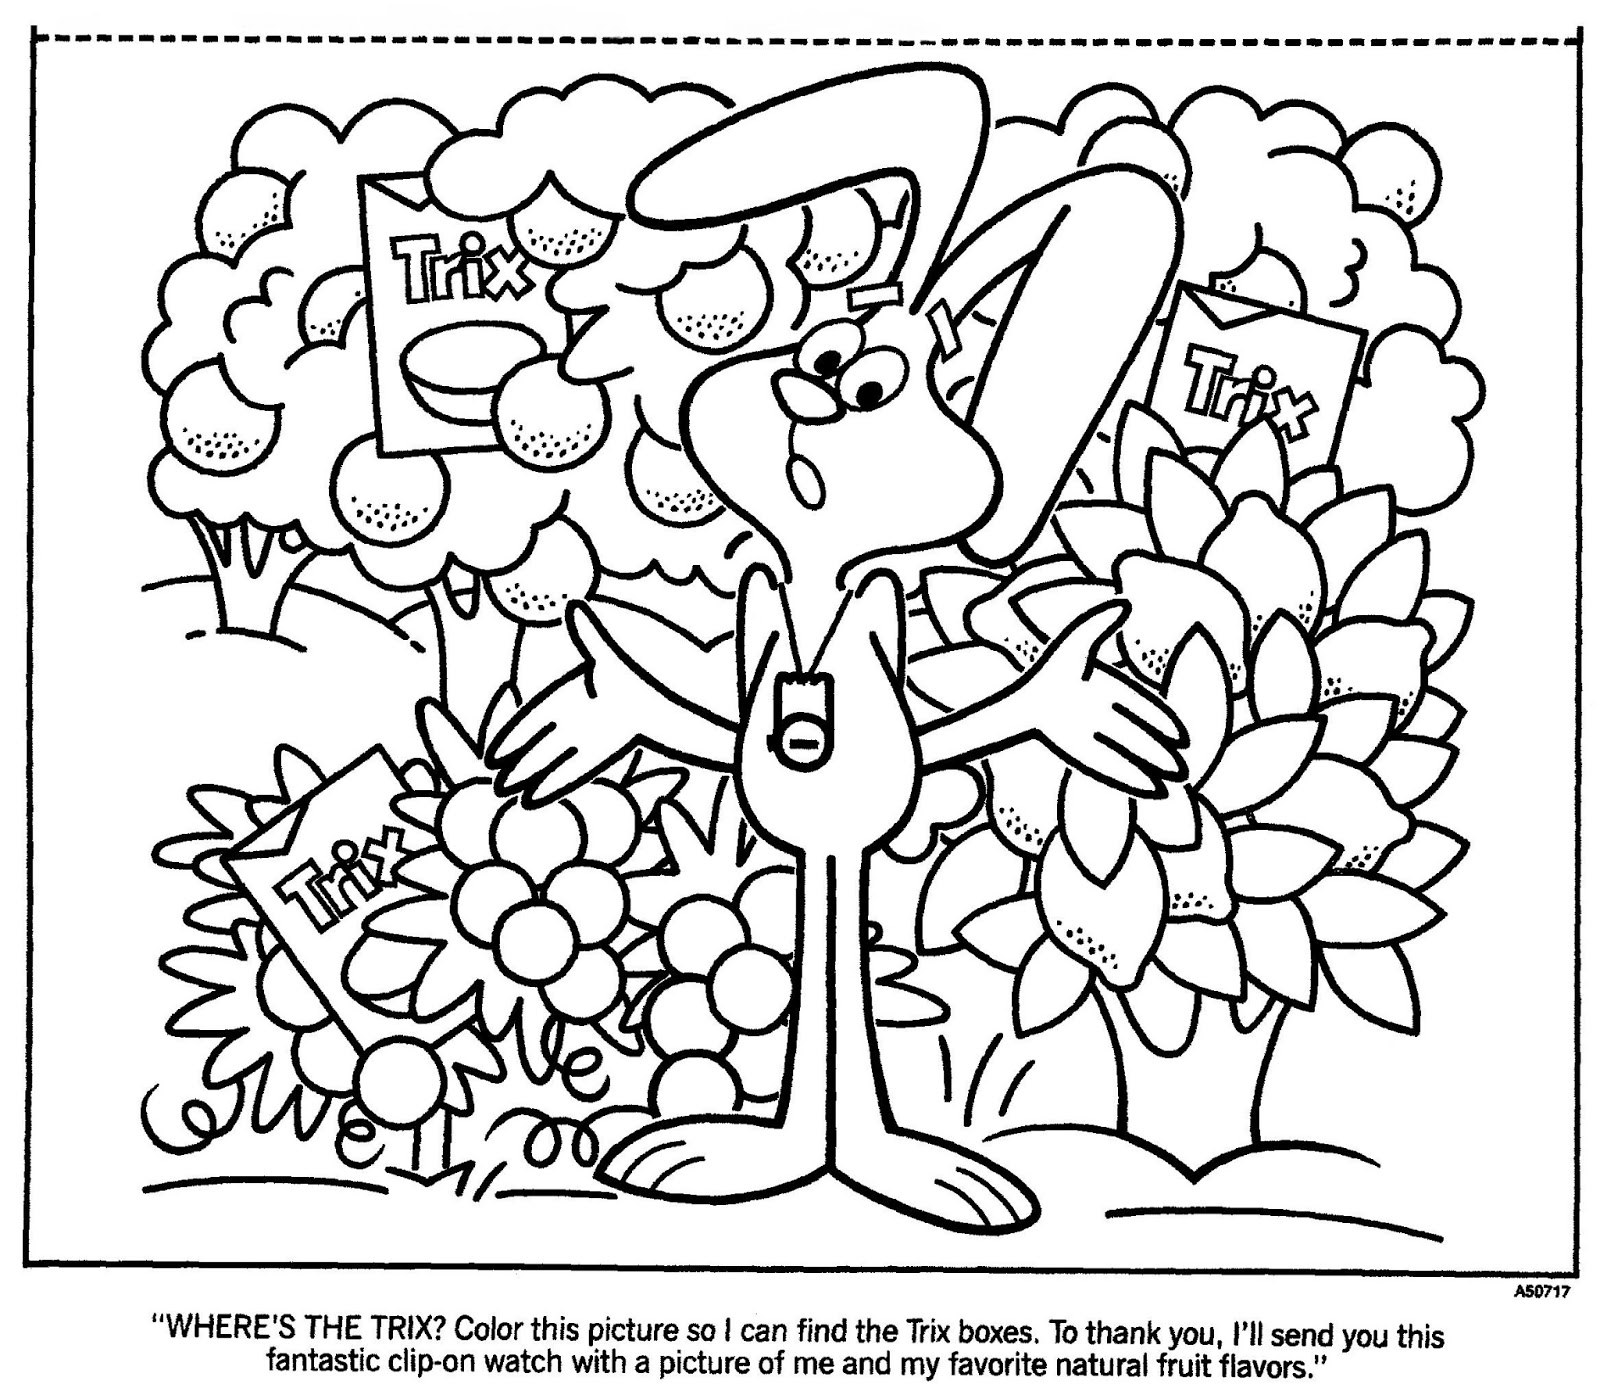 Trix coloring pages ~ Mostly Paper Dolls Too!: March 2013